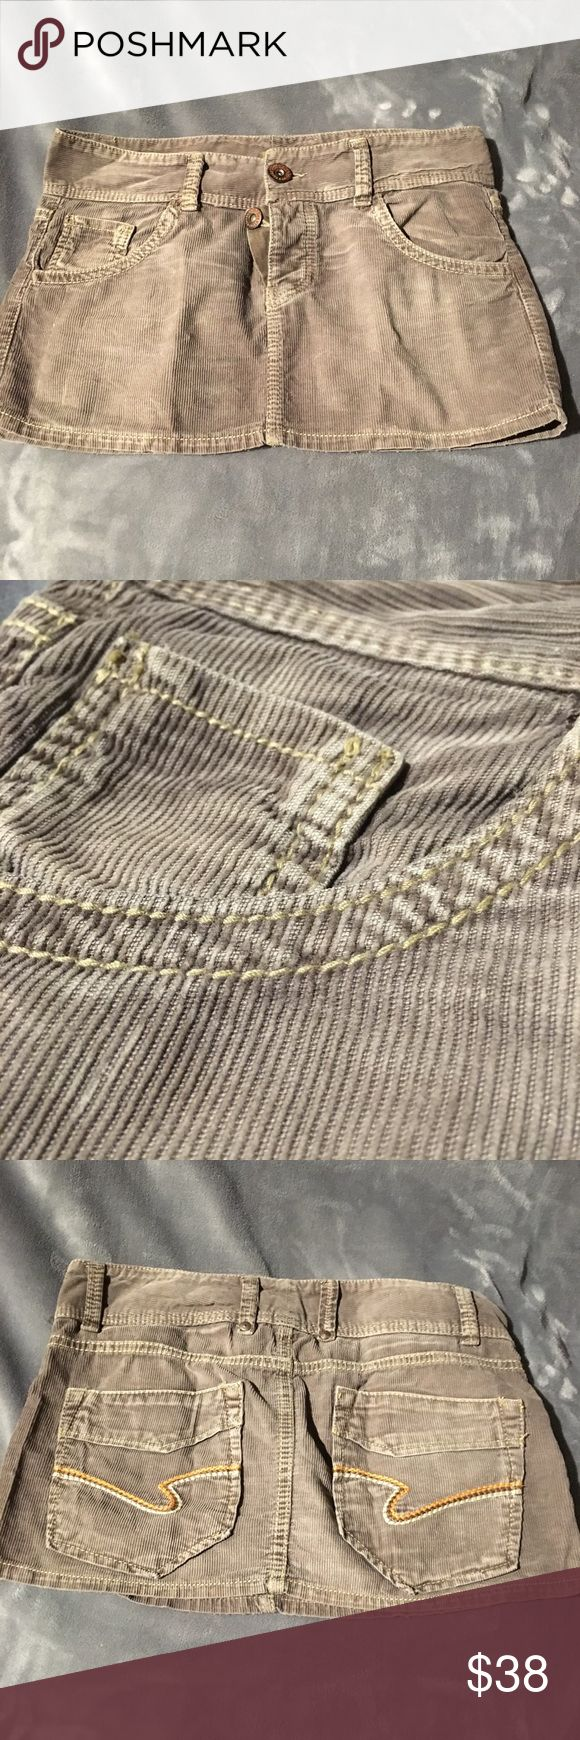 """Brown corduroy mini skirt Super cute grayish brown corduroy mini skirt! Original faded broken in look. Wear it low on the hip with a white tank and high tops. Adorable and in great condition. Length: 10 1/2"""" in front, 12"""" in back Skirts Mini"""